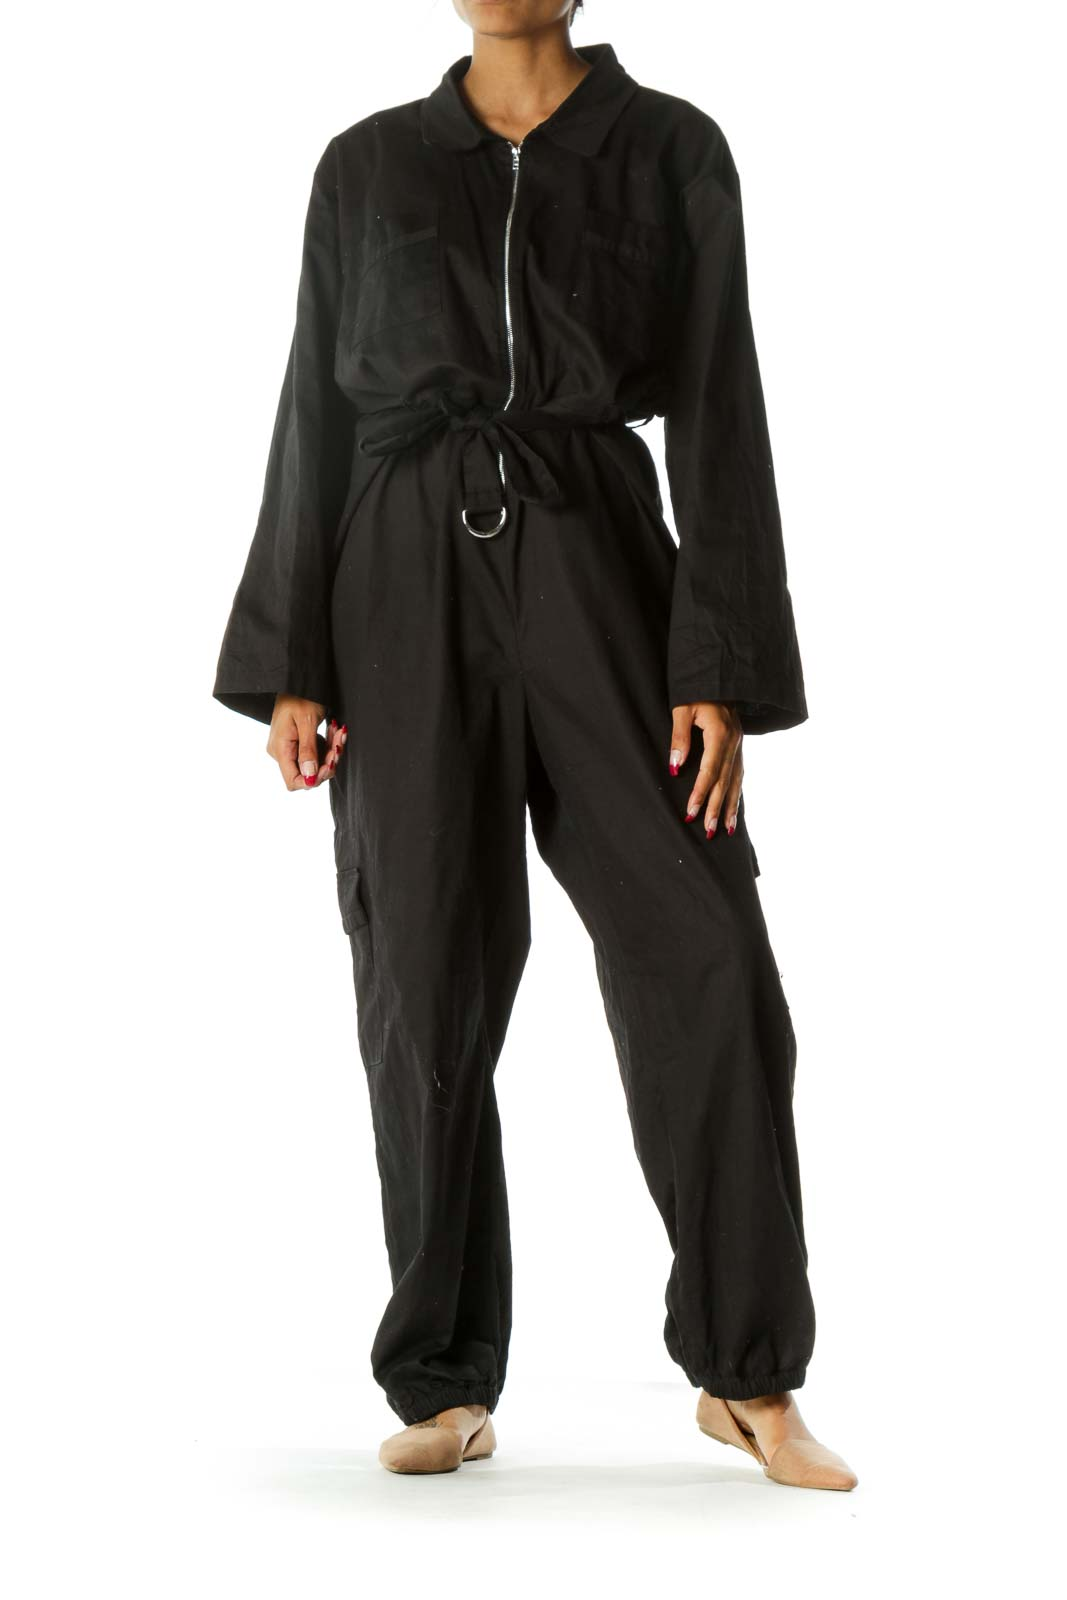 Black Zippered Pocketed Belted Elastic Ankles Jumpsuit